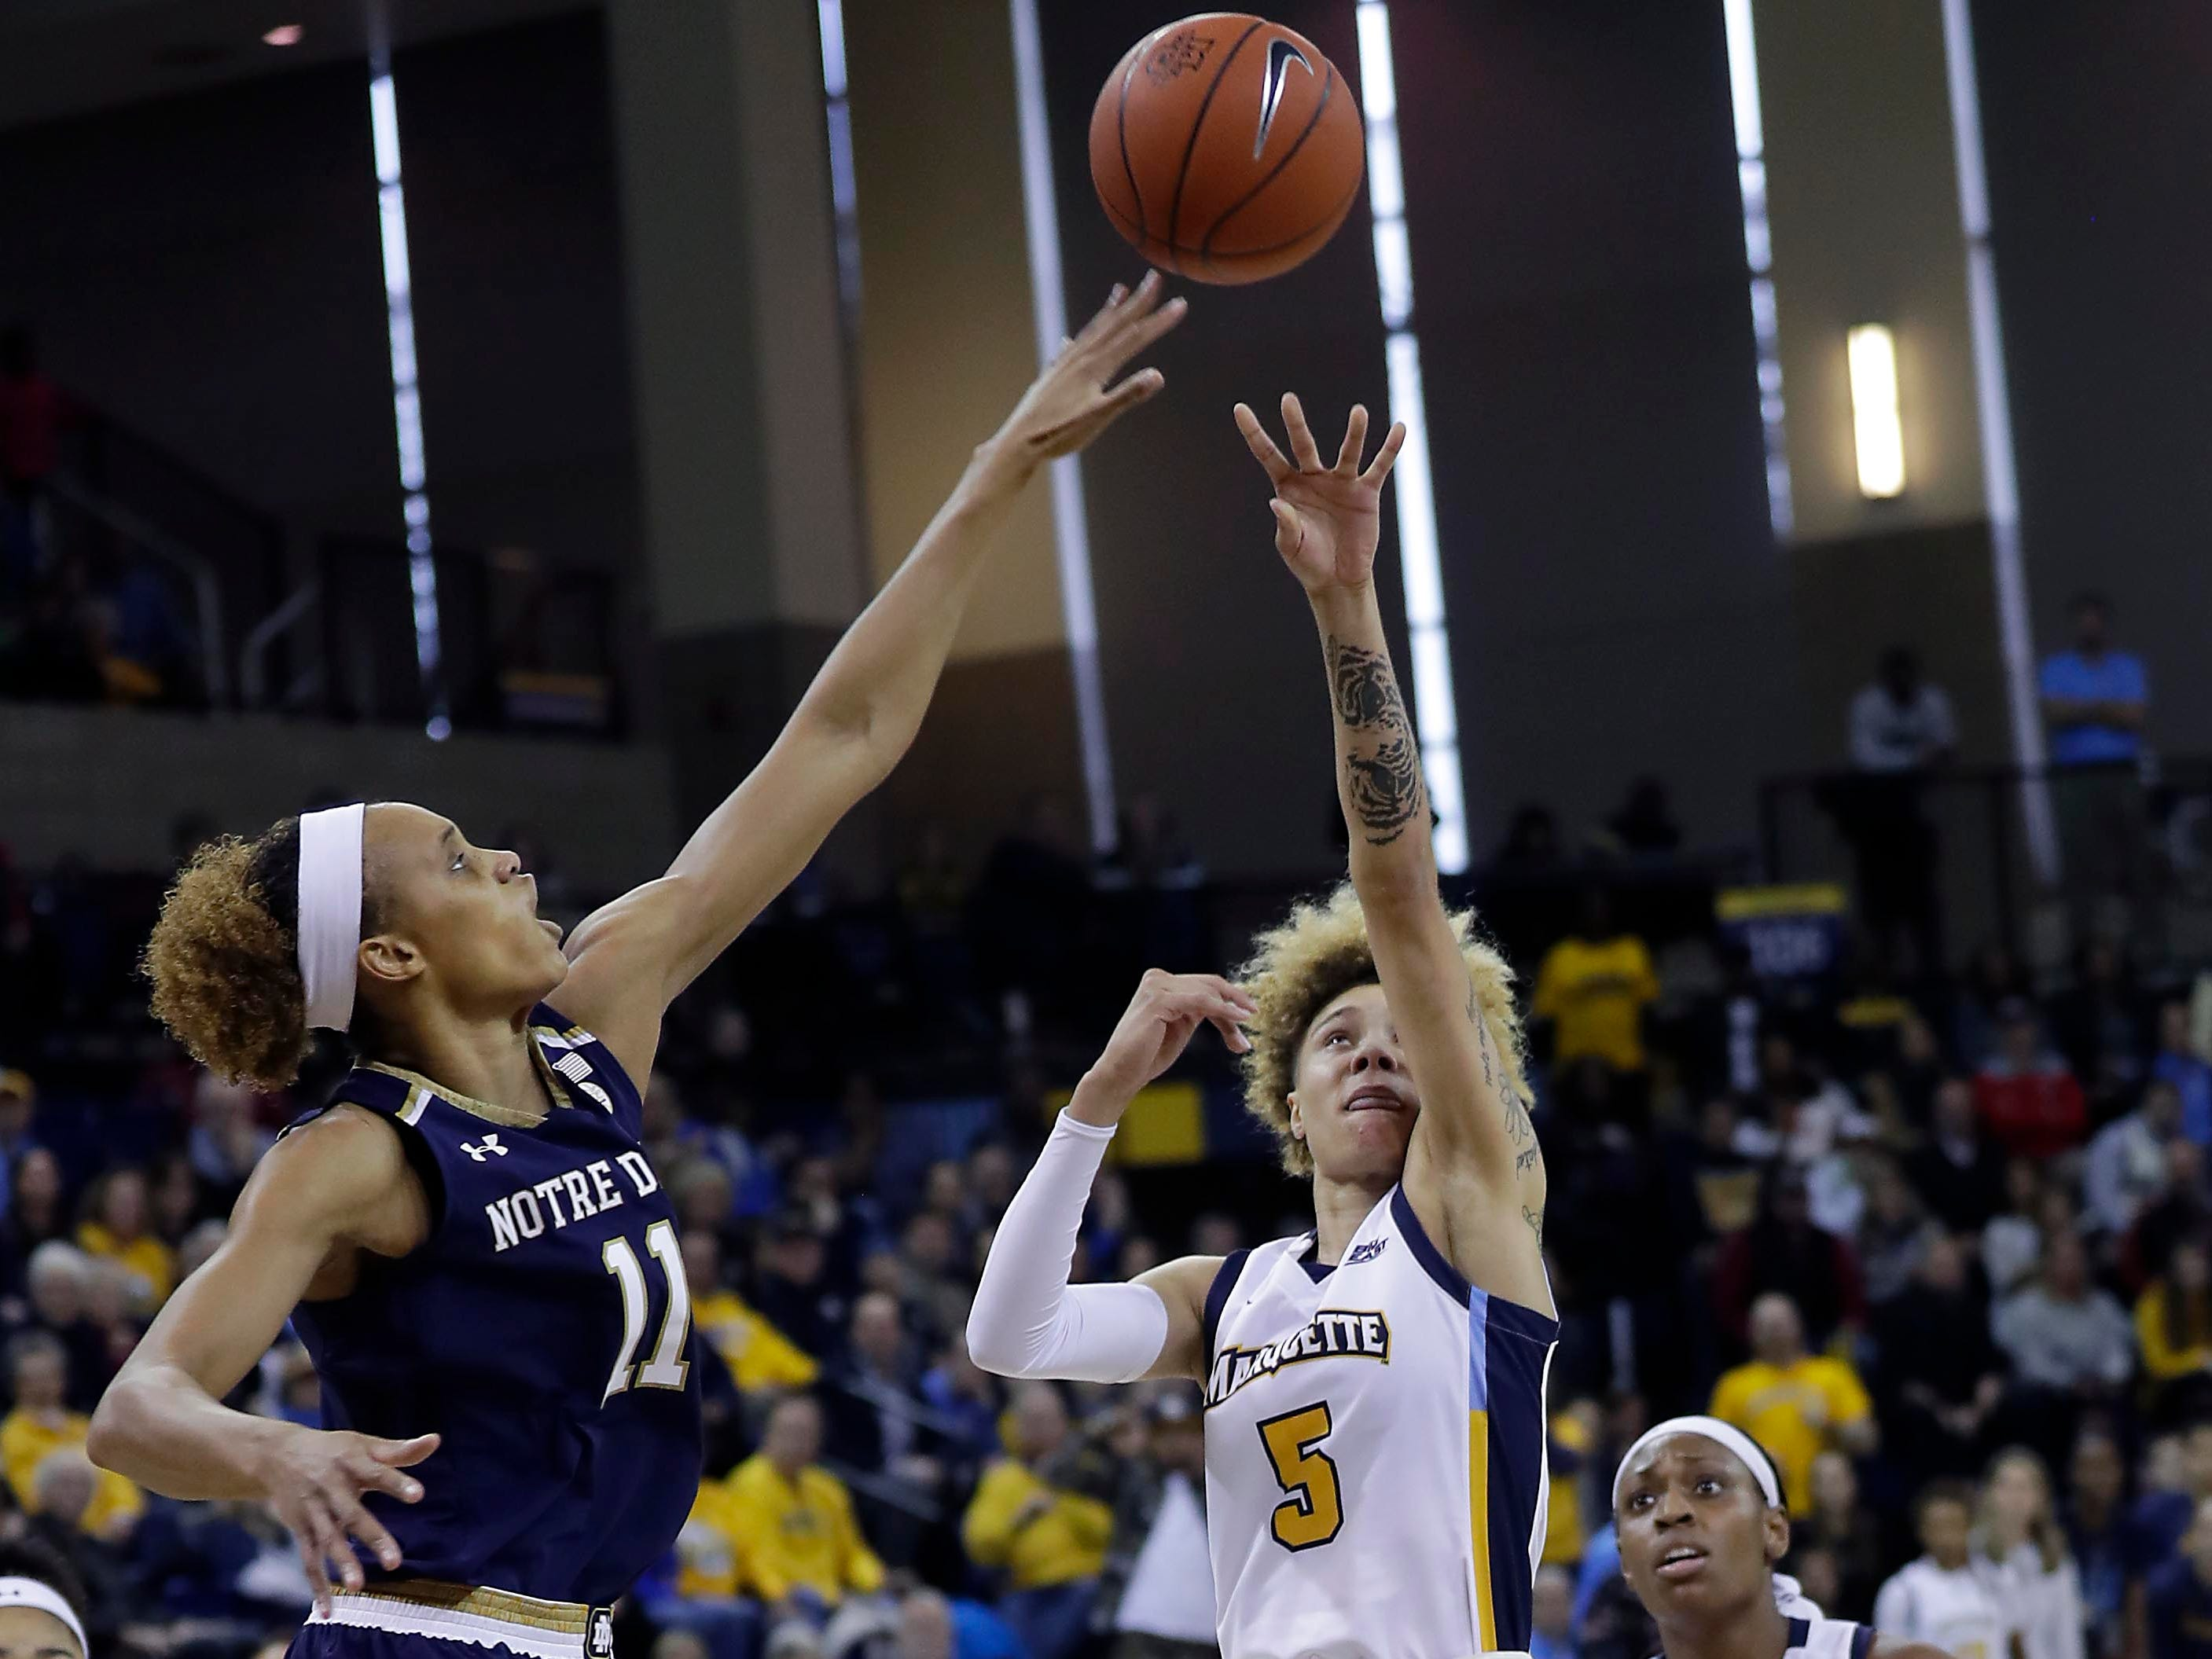 Notre Dame Fighting Irish forward Brianna Turner (11) tips away a shot by Marquette Golden Eagles guard Natisha Hiedeman (5) during the women's basketball  game  between Marquette and Notre Dame. Notre Dame, the the defending national champion, which won the game 87-63, is led by former DSHA star Arike Ogunbowale. MU is also a top-25 team expected to win the Big East.   MILWAUKEE JOURNAL SENTINEL/RICK WOOD ORG XMIT: 20097356A